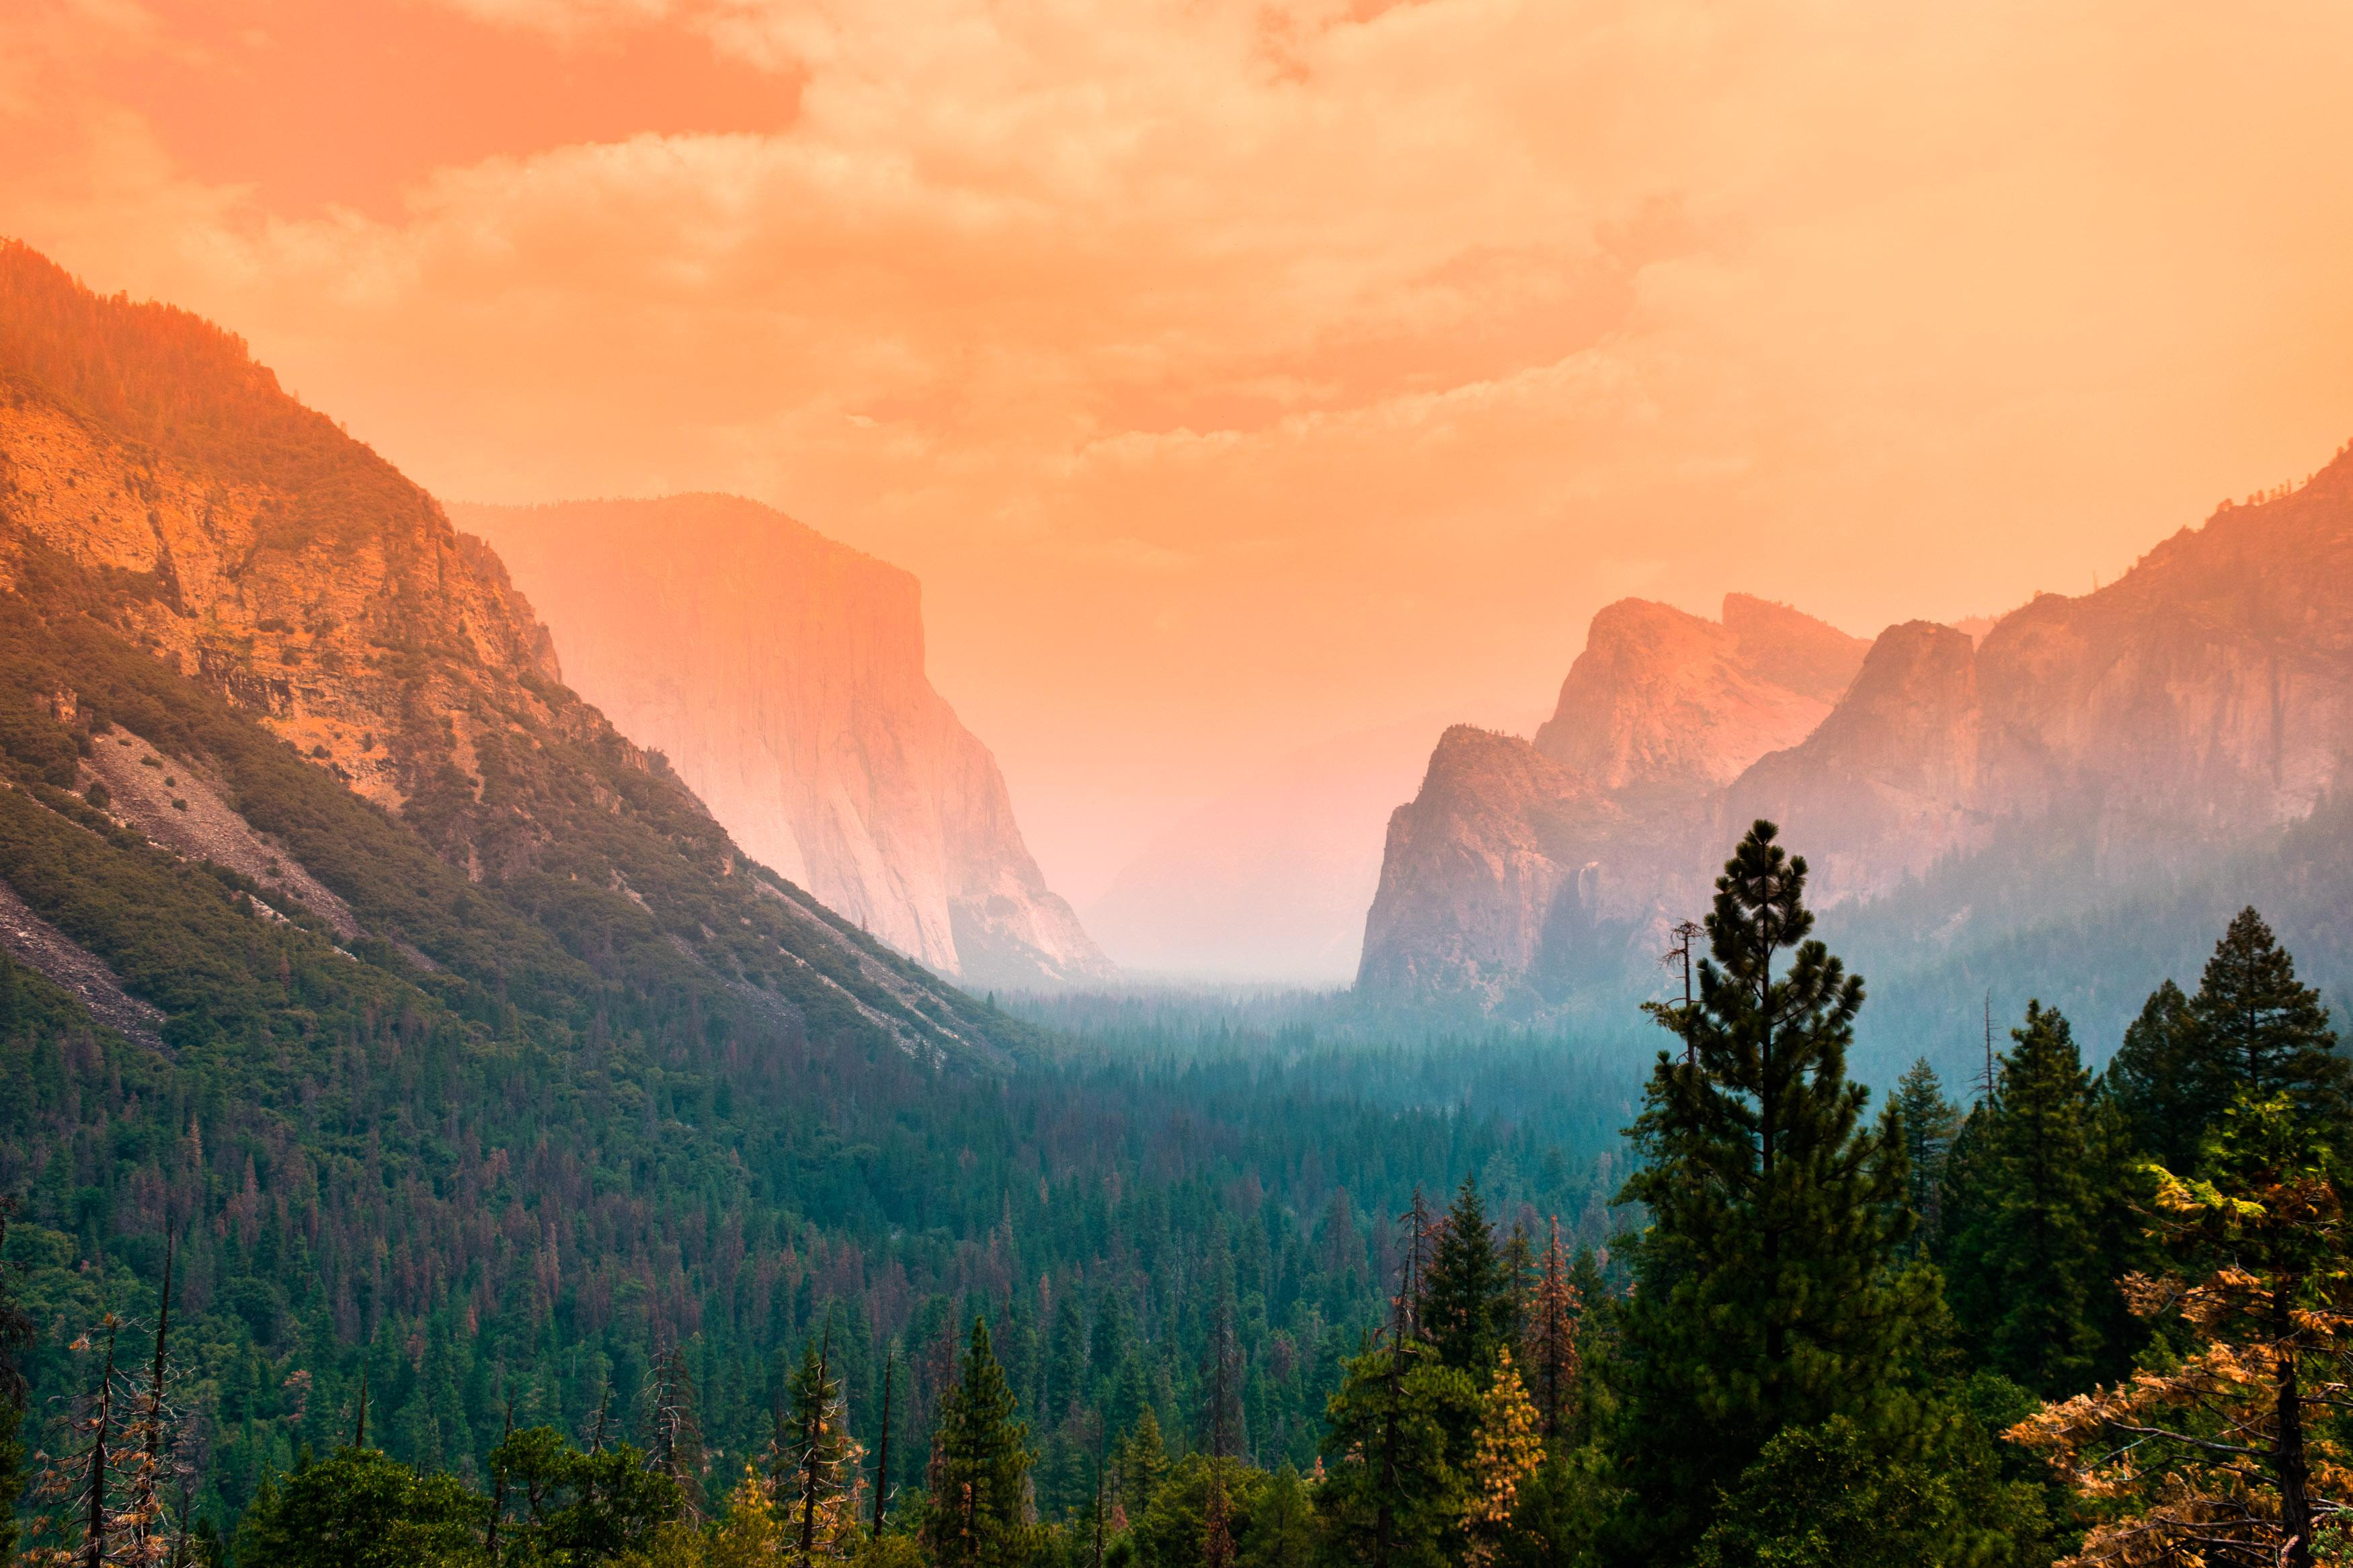 1080x1920 4k Yosemite Iphone 7 6s 6 Plus Pixel Xl One Plus 3 3t 5 Hd 4k Wallpapers Images Backgrounds Photos And Pictures